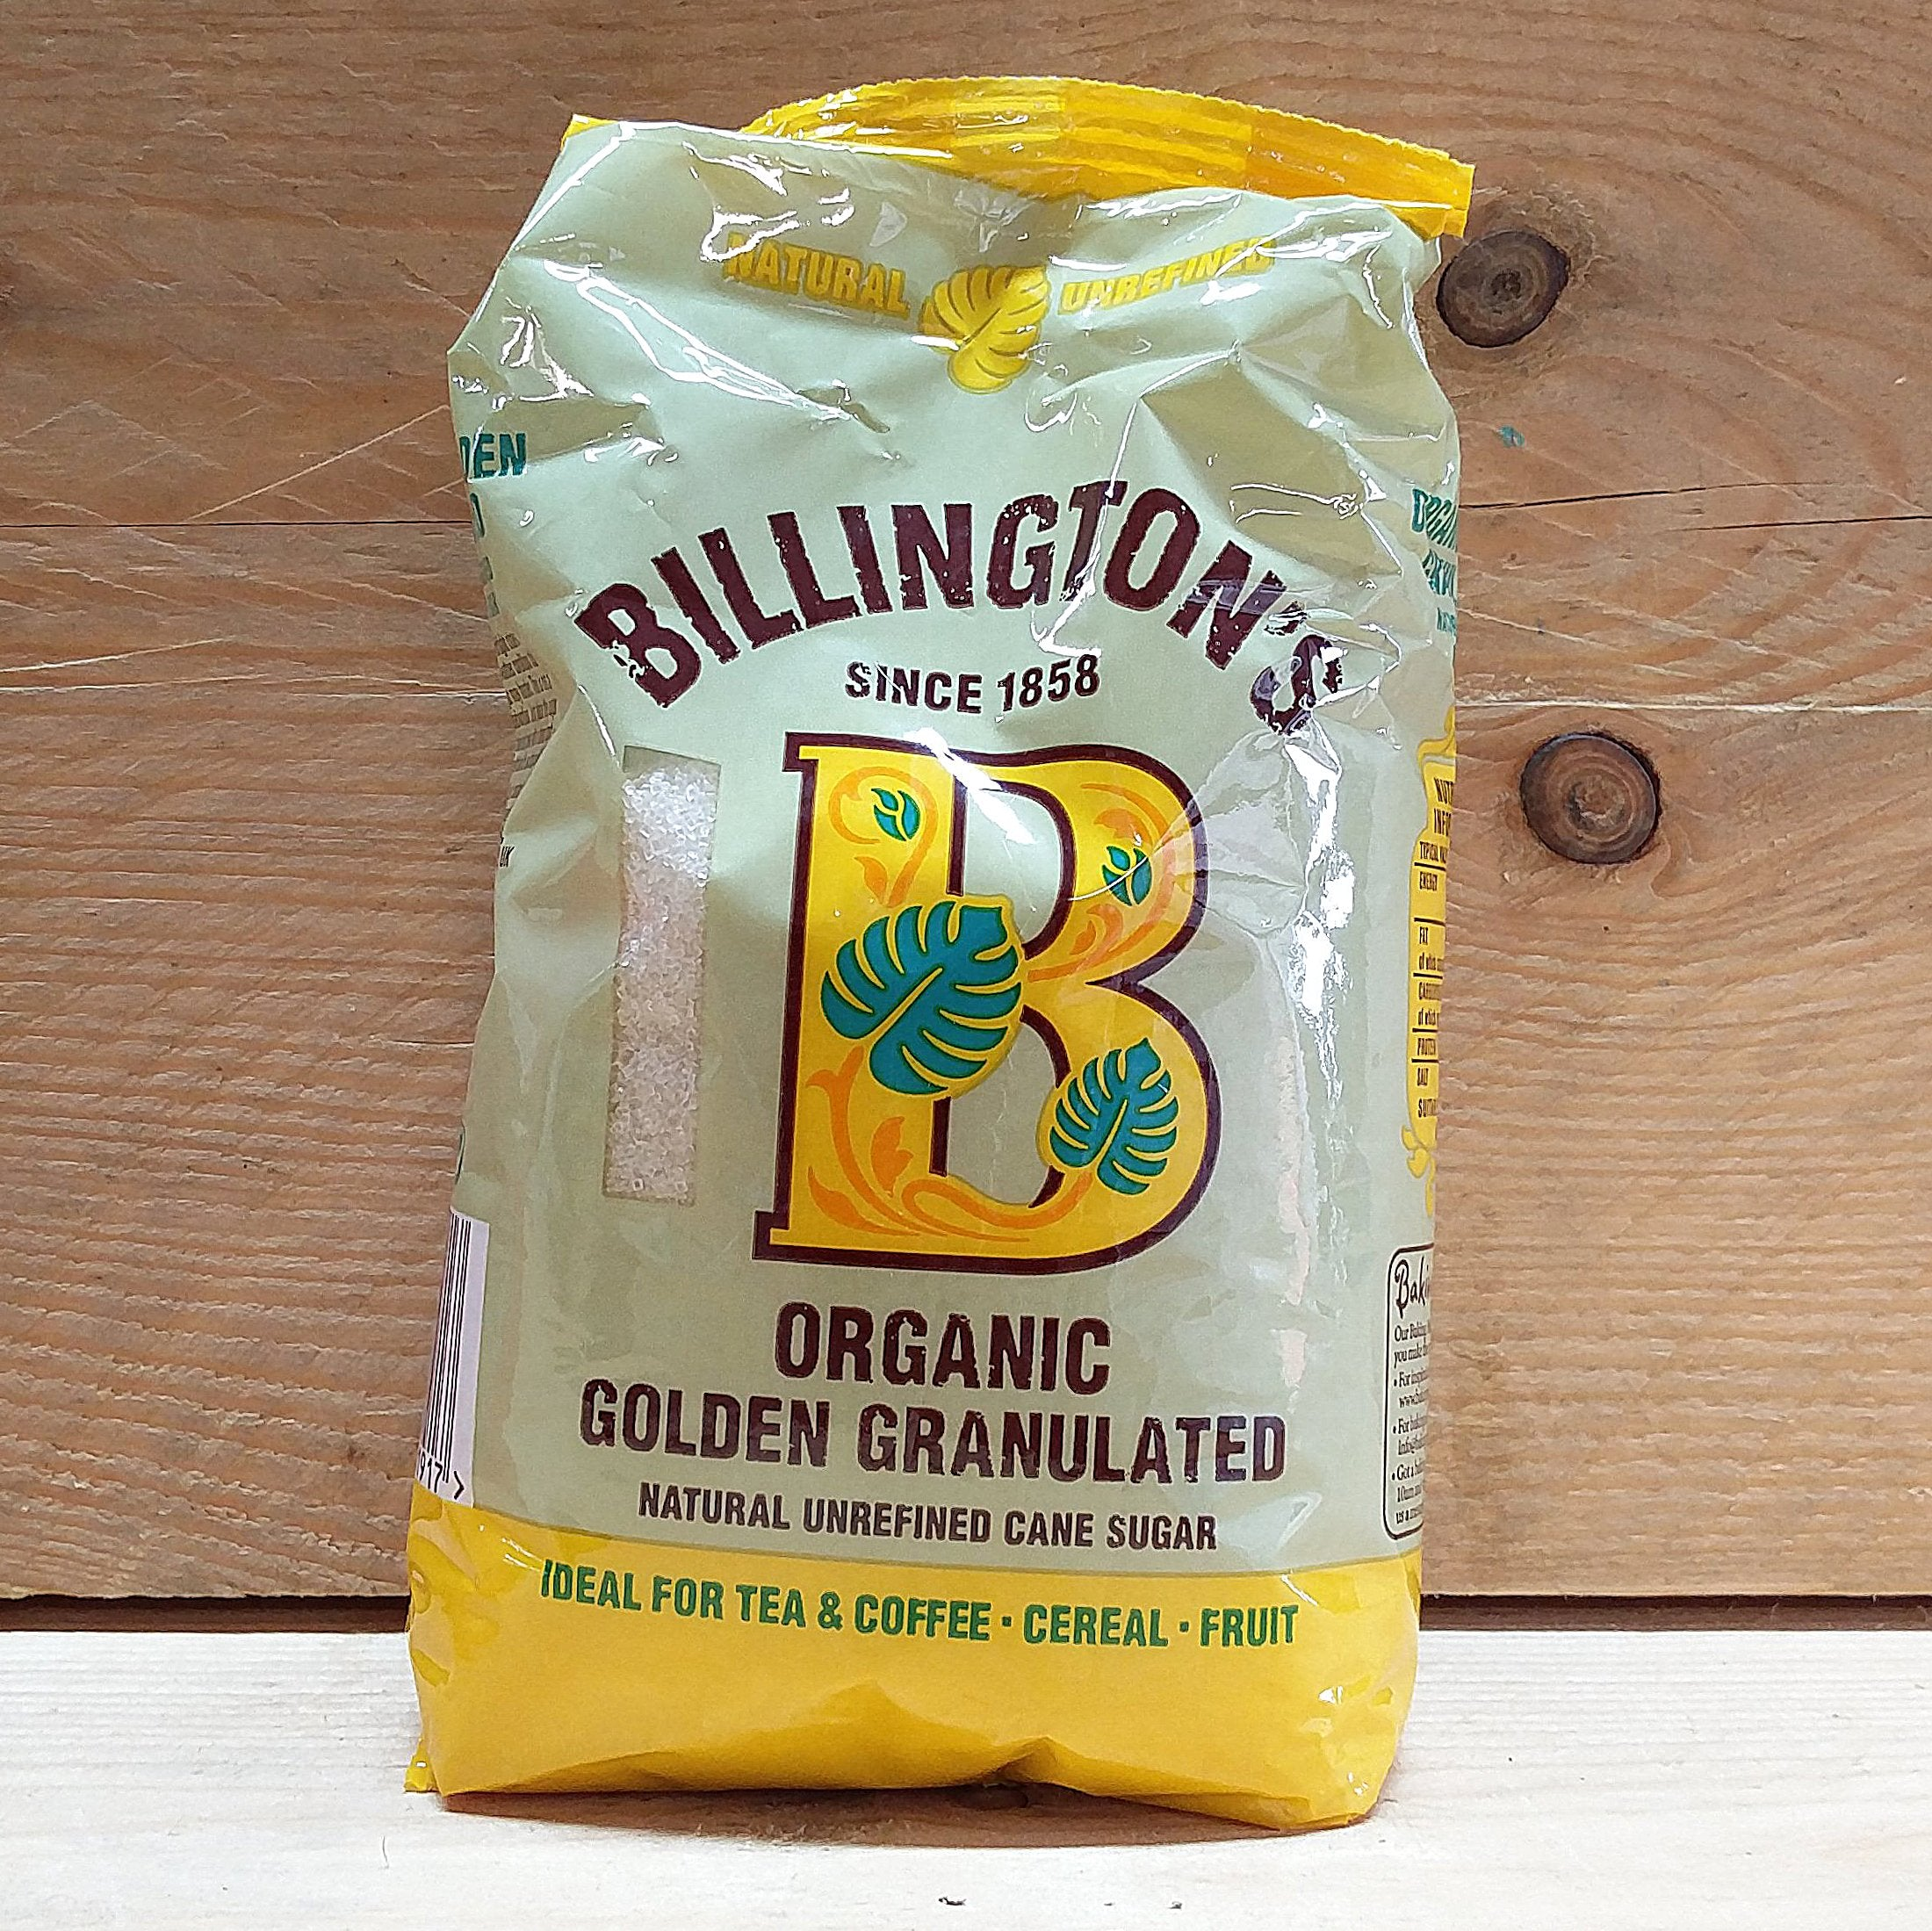 Billingtons Granulated Golden Sugar 500g